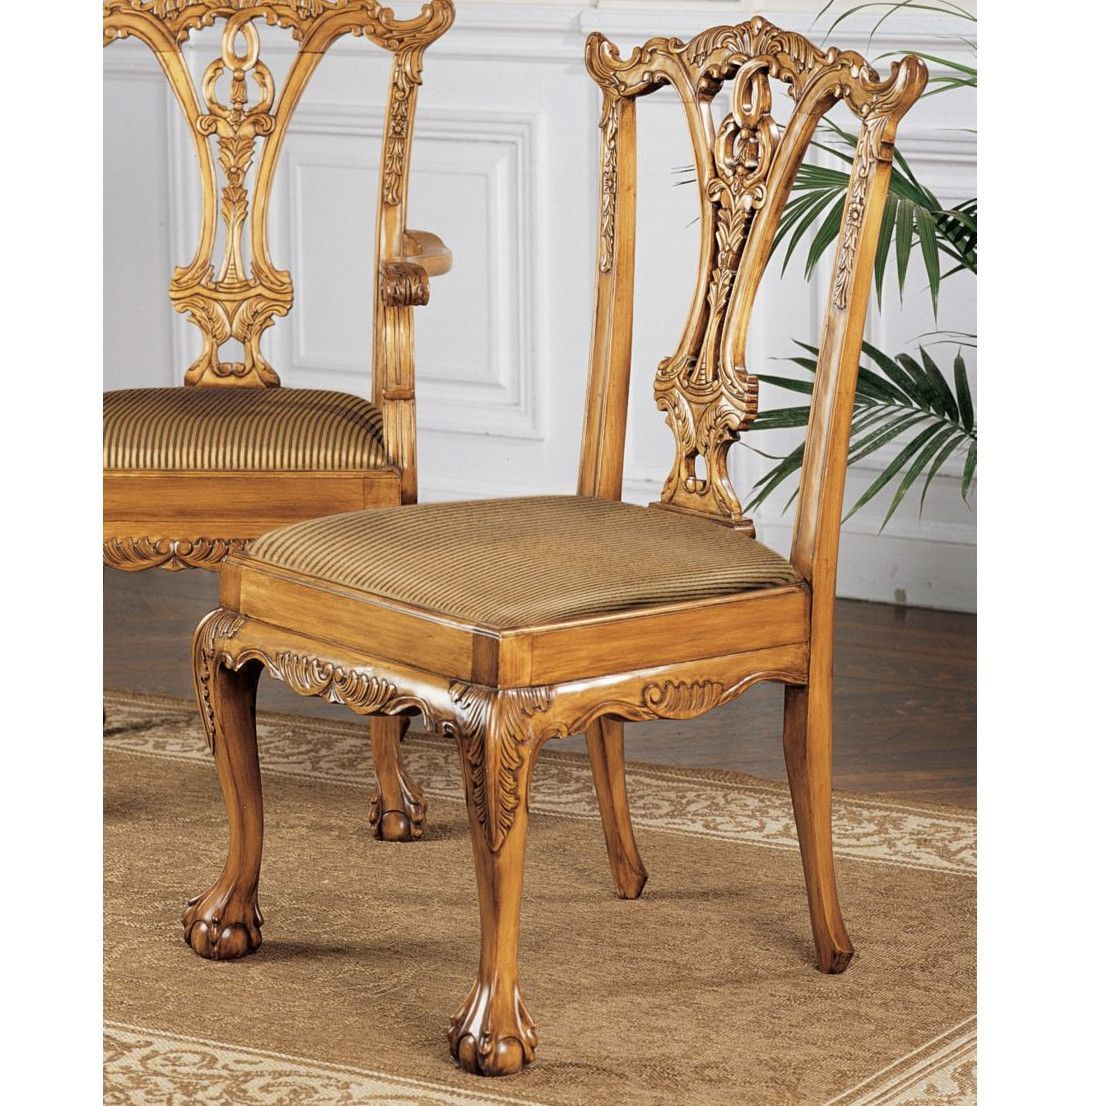 Antique chairs design - Antique Chairs